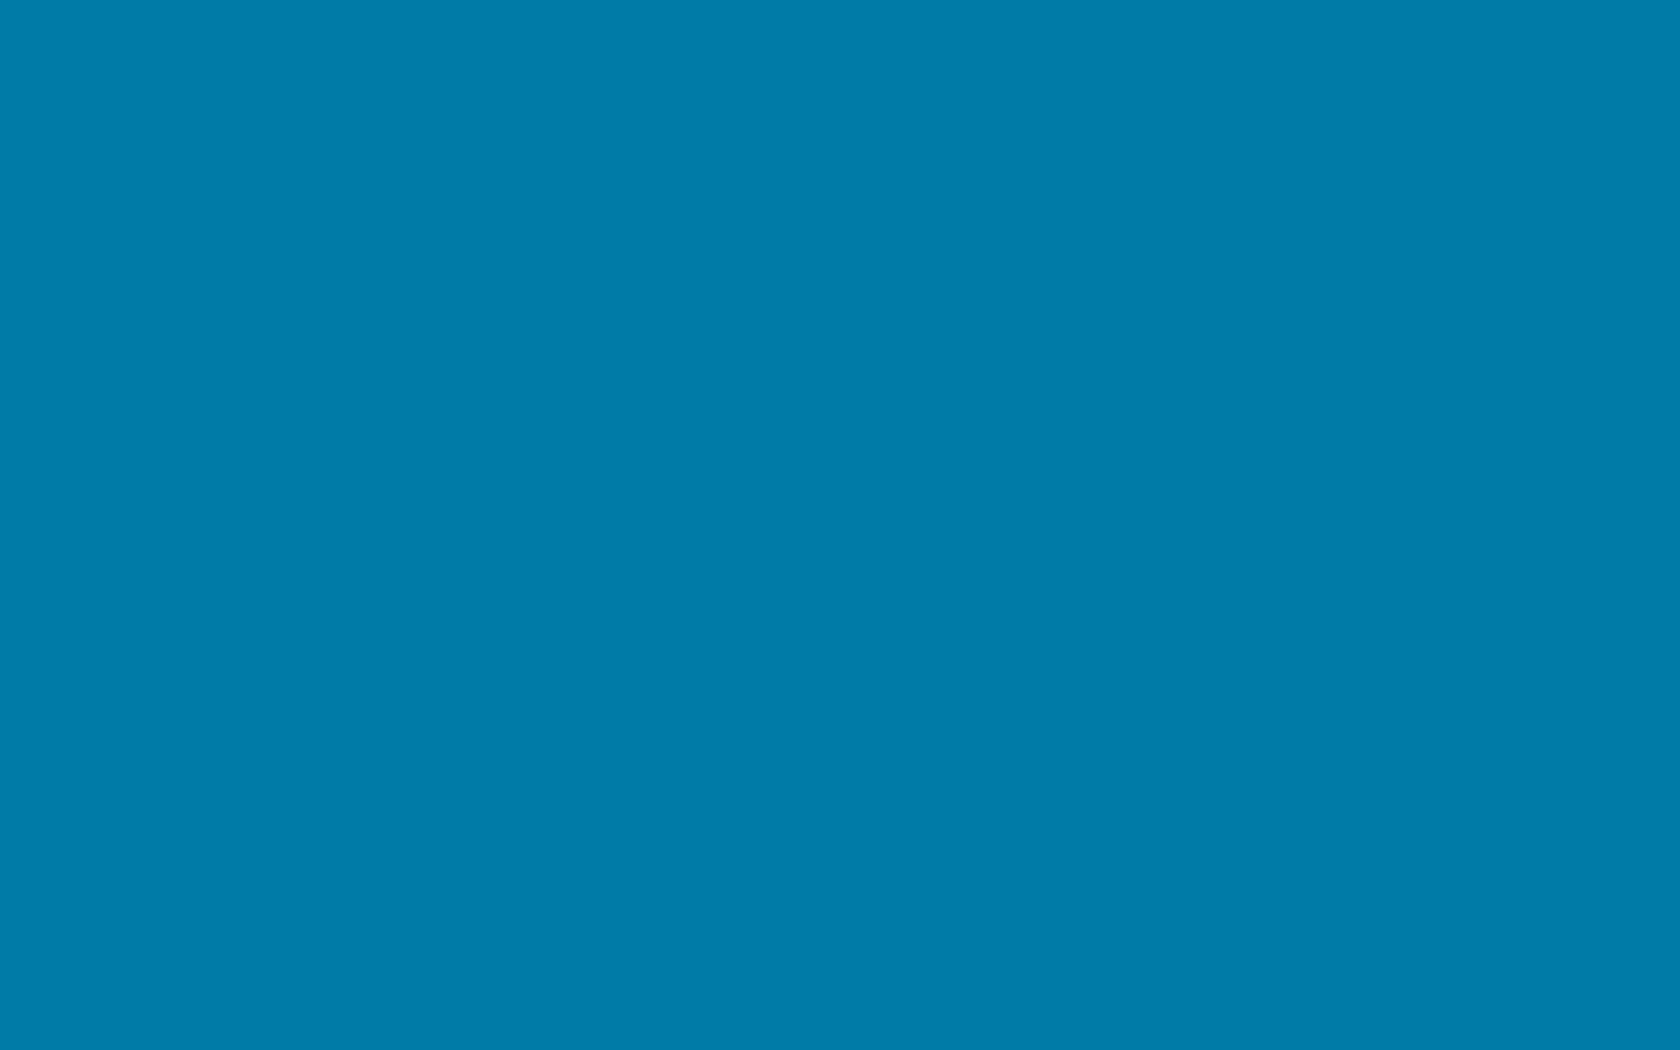 1680x1050 Cerulean Solid Color Background